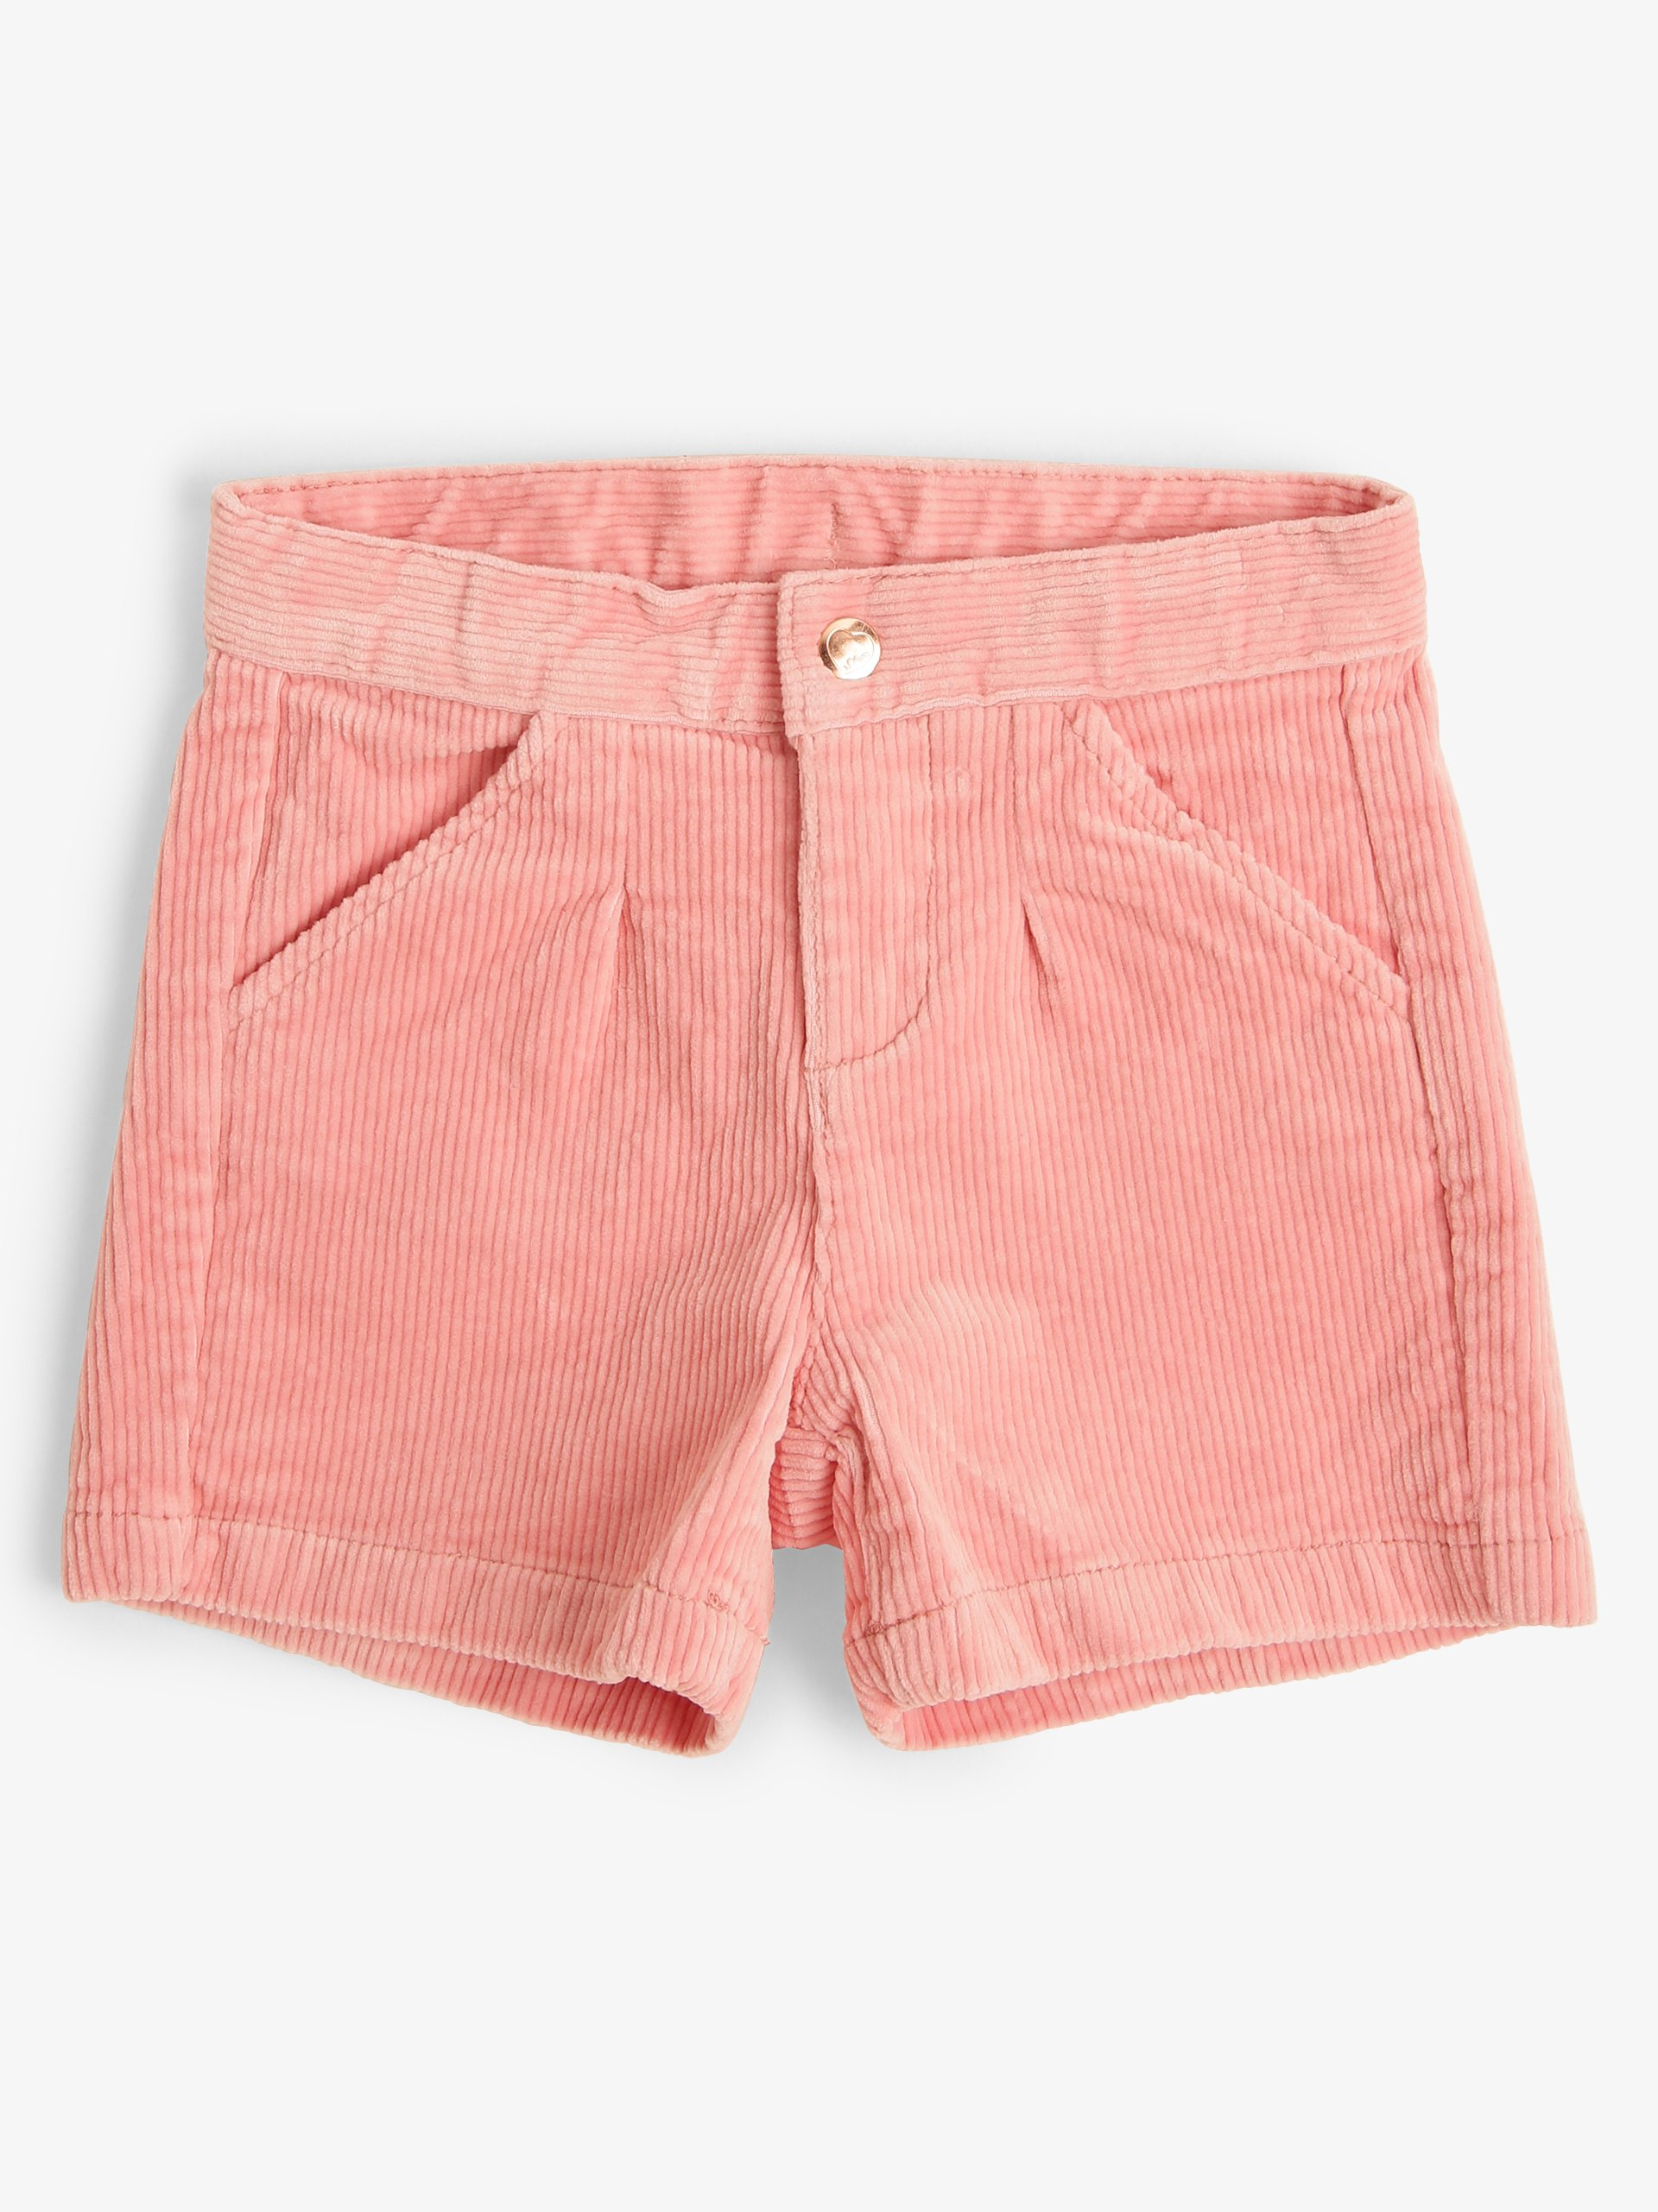 s.Oliver Casual Mädchen Shorts